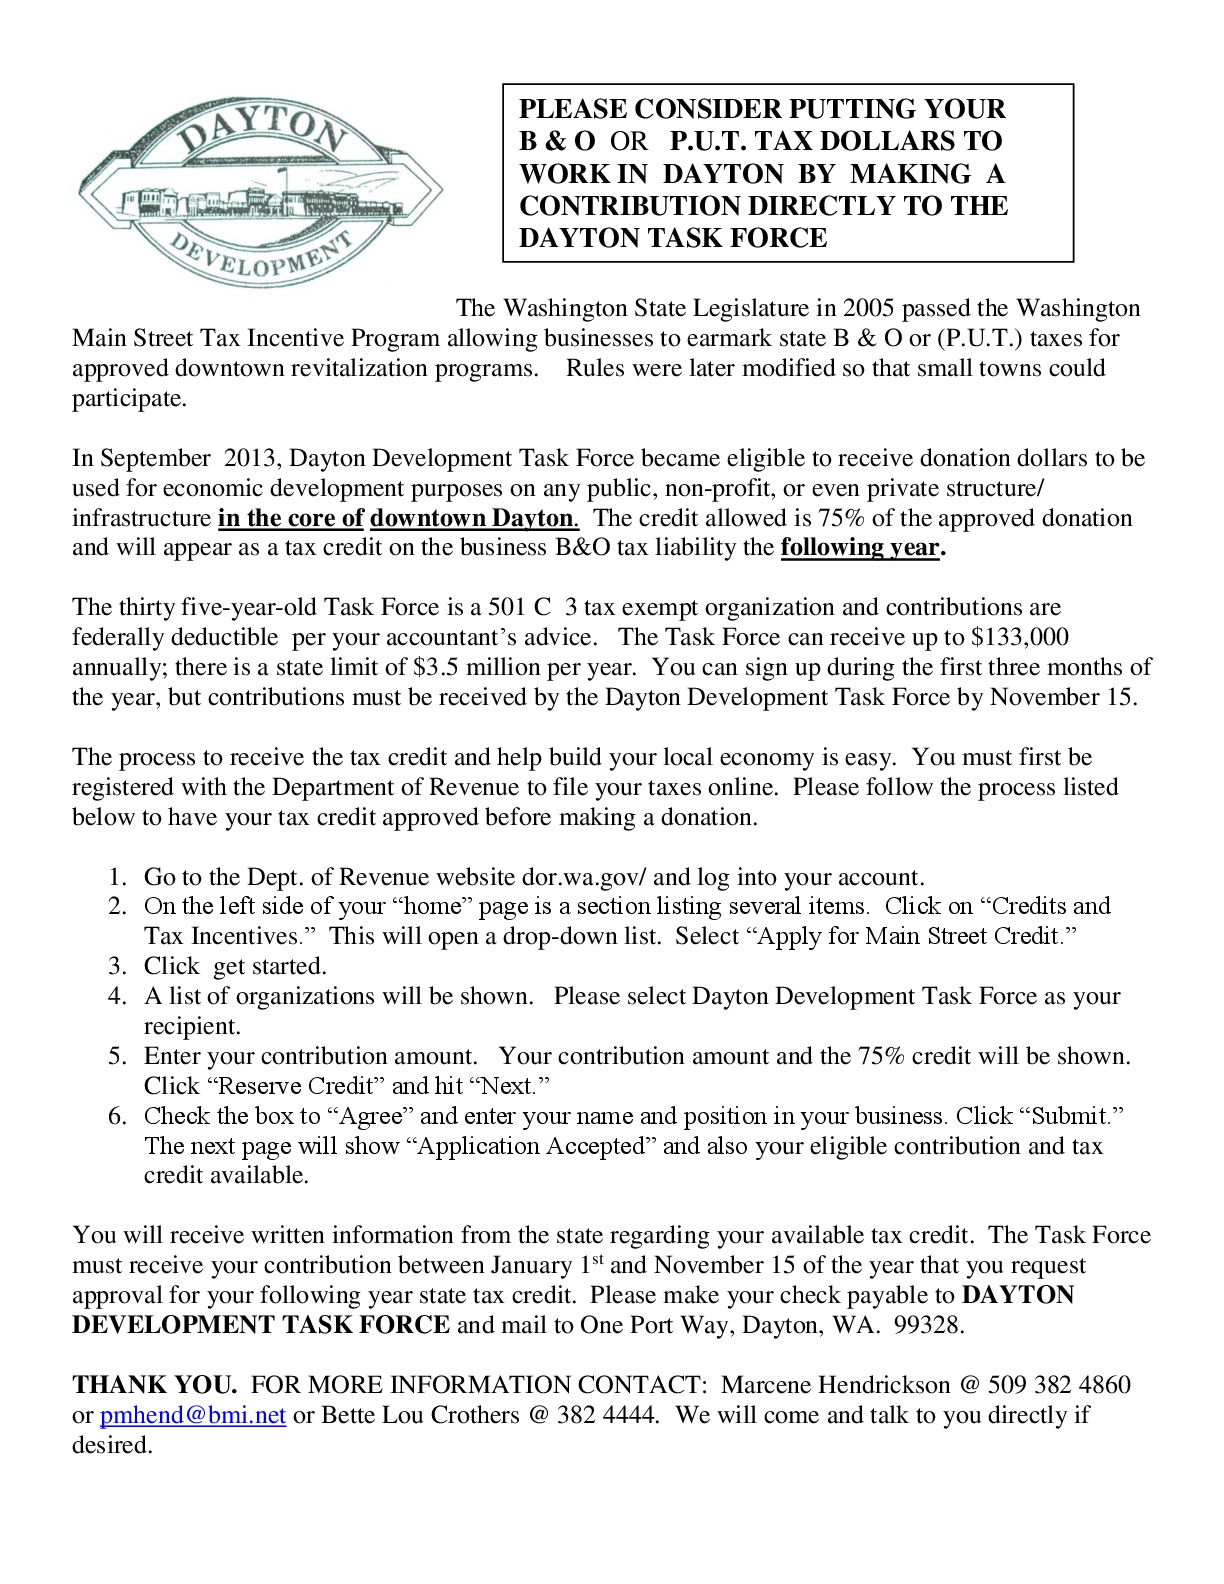 TASK-Force-letter--B-&-O-How-to-contribute-001[1].jpg